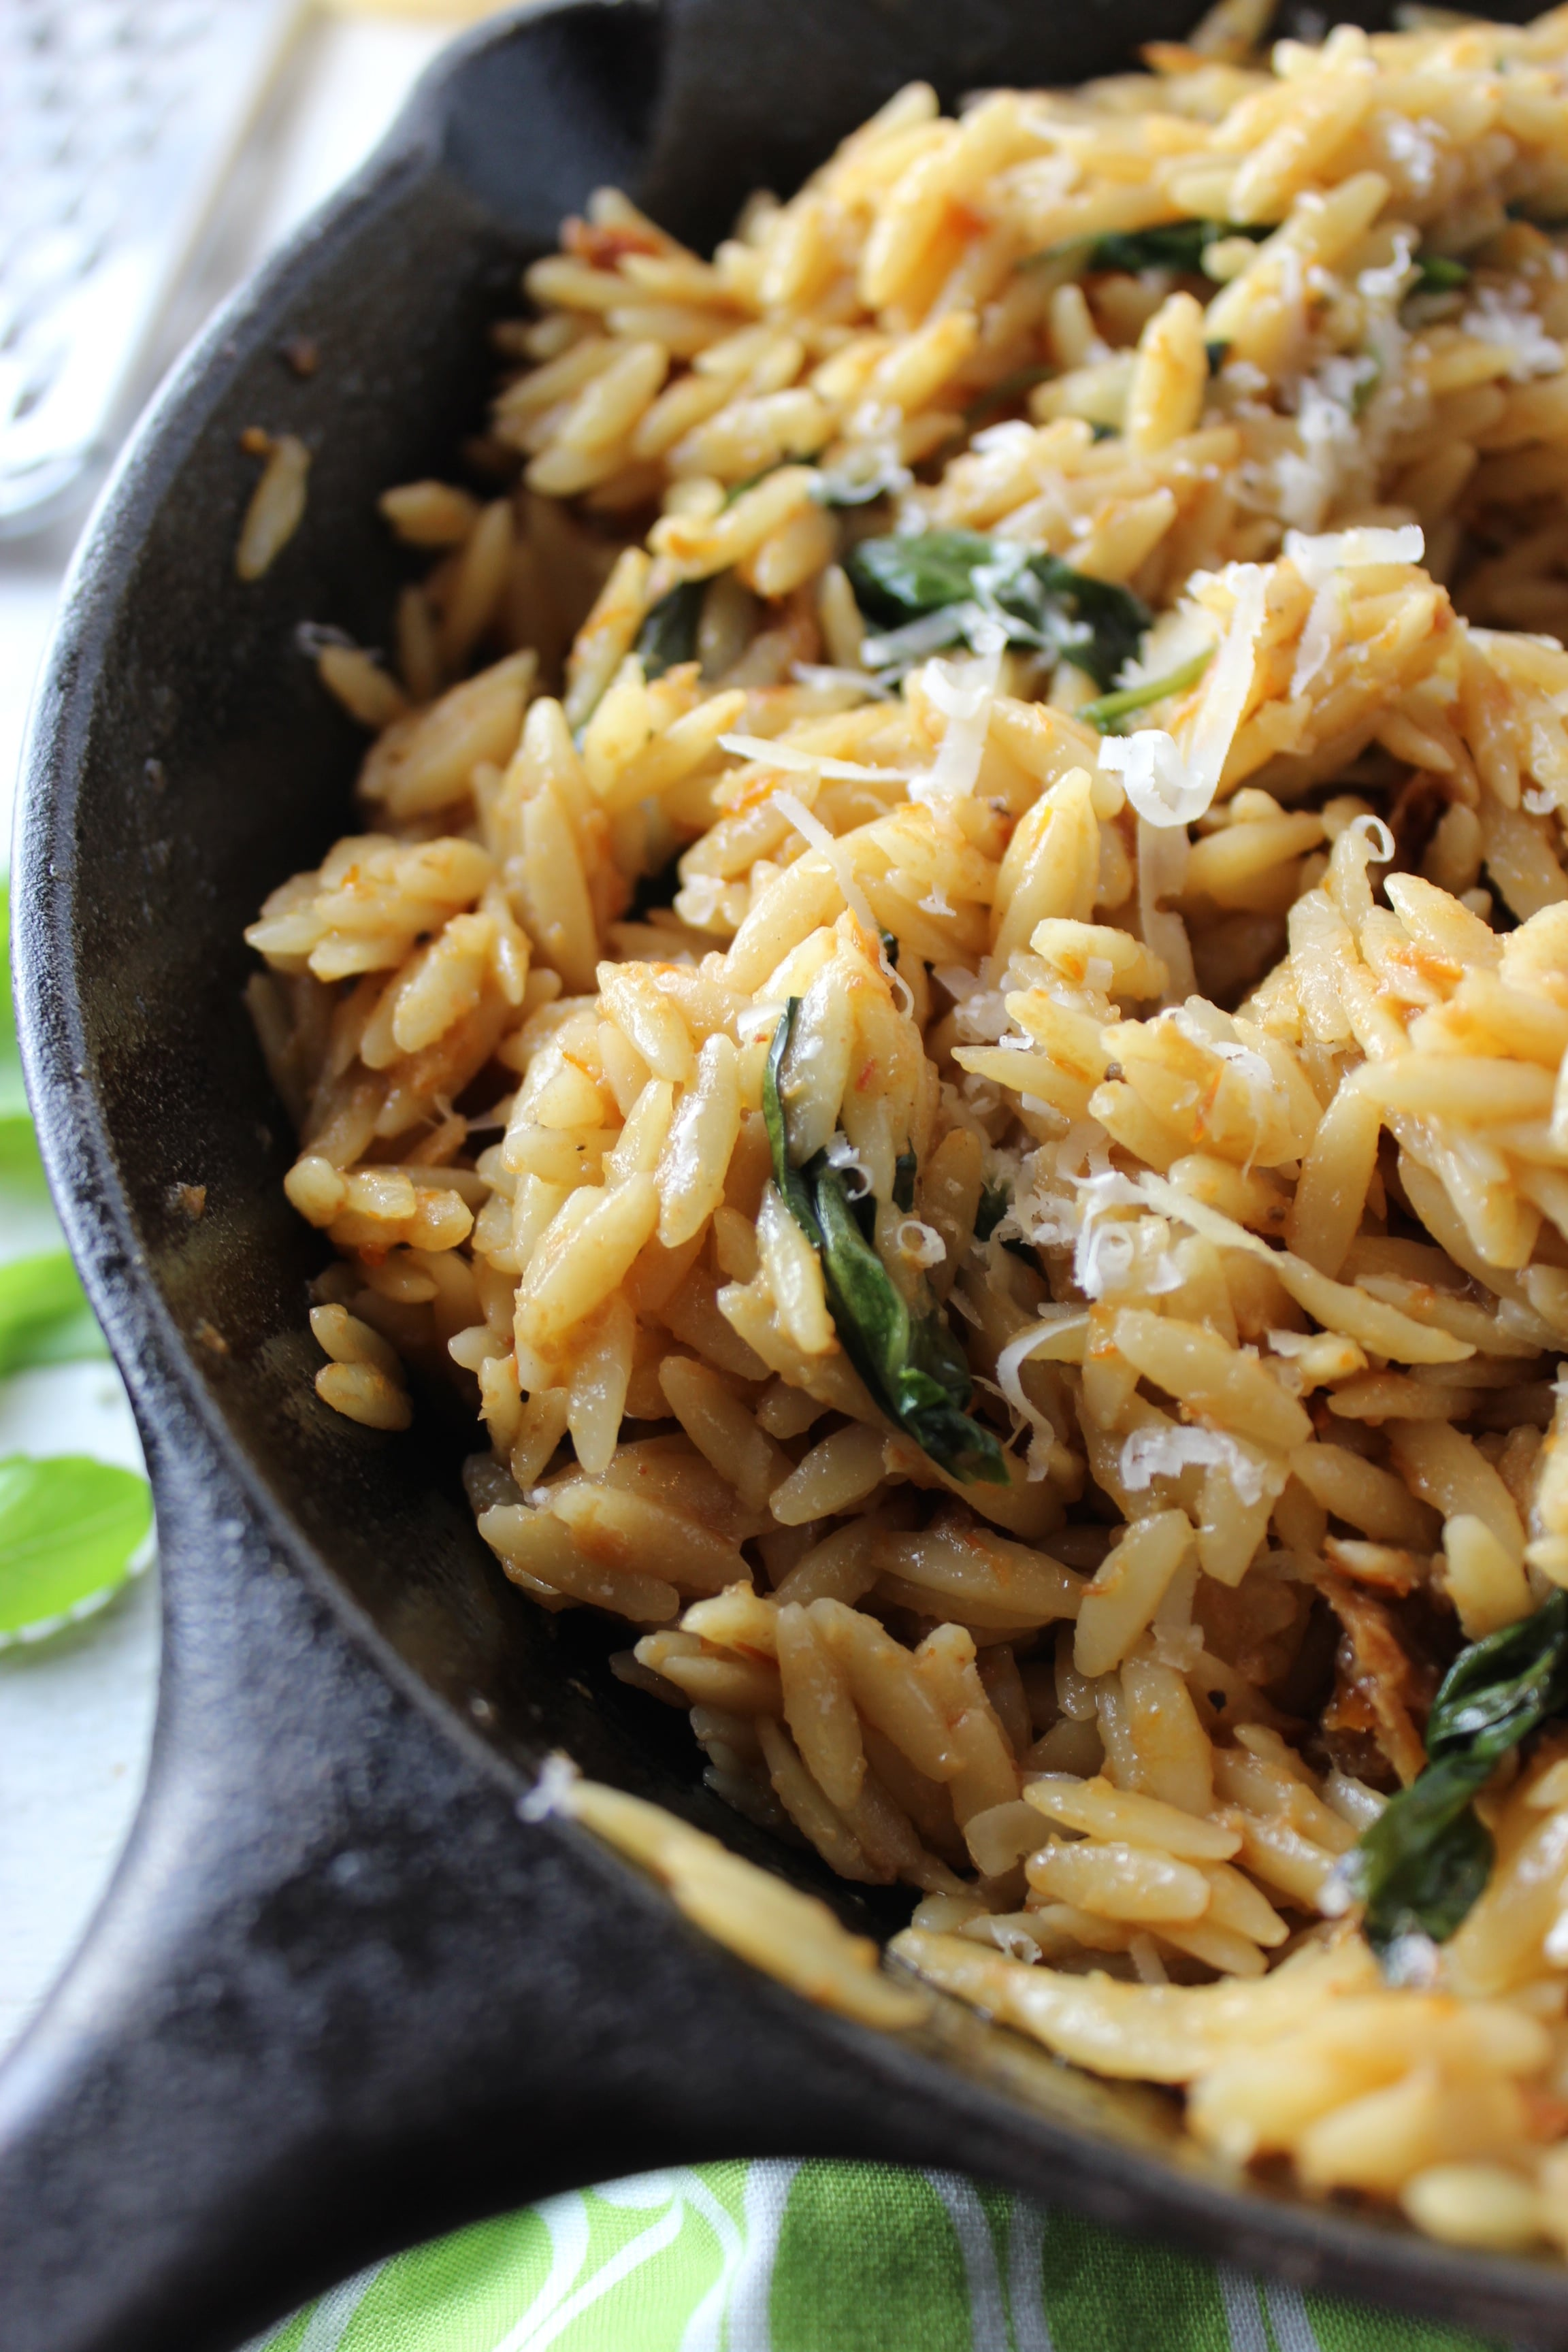 20 Minute Orzo with Creamy Sun-Dried Tomato Basil Sauce